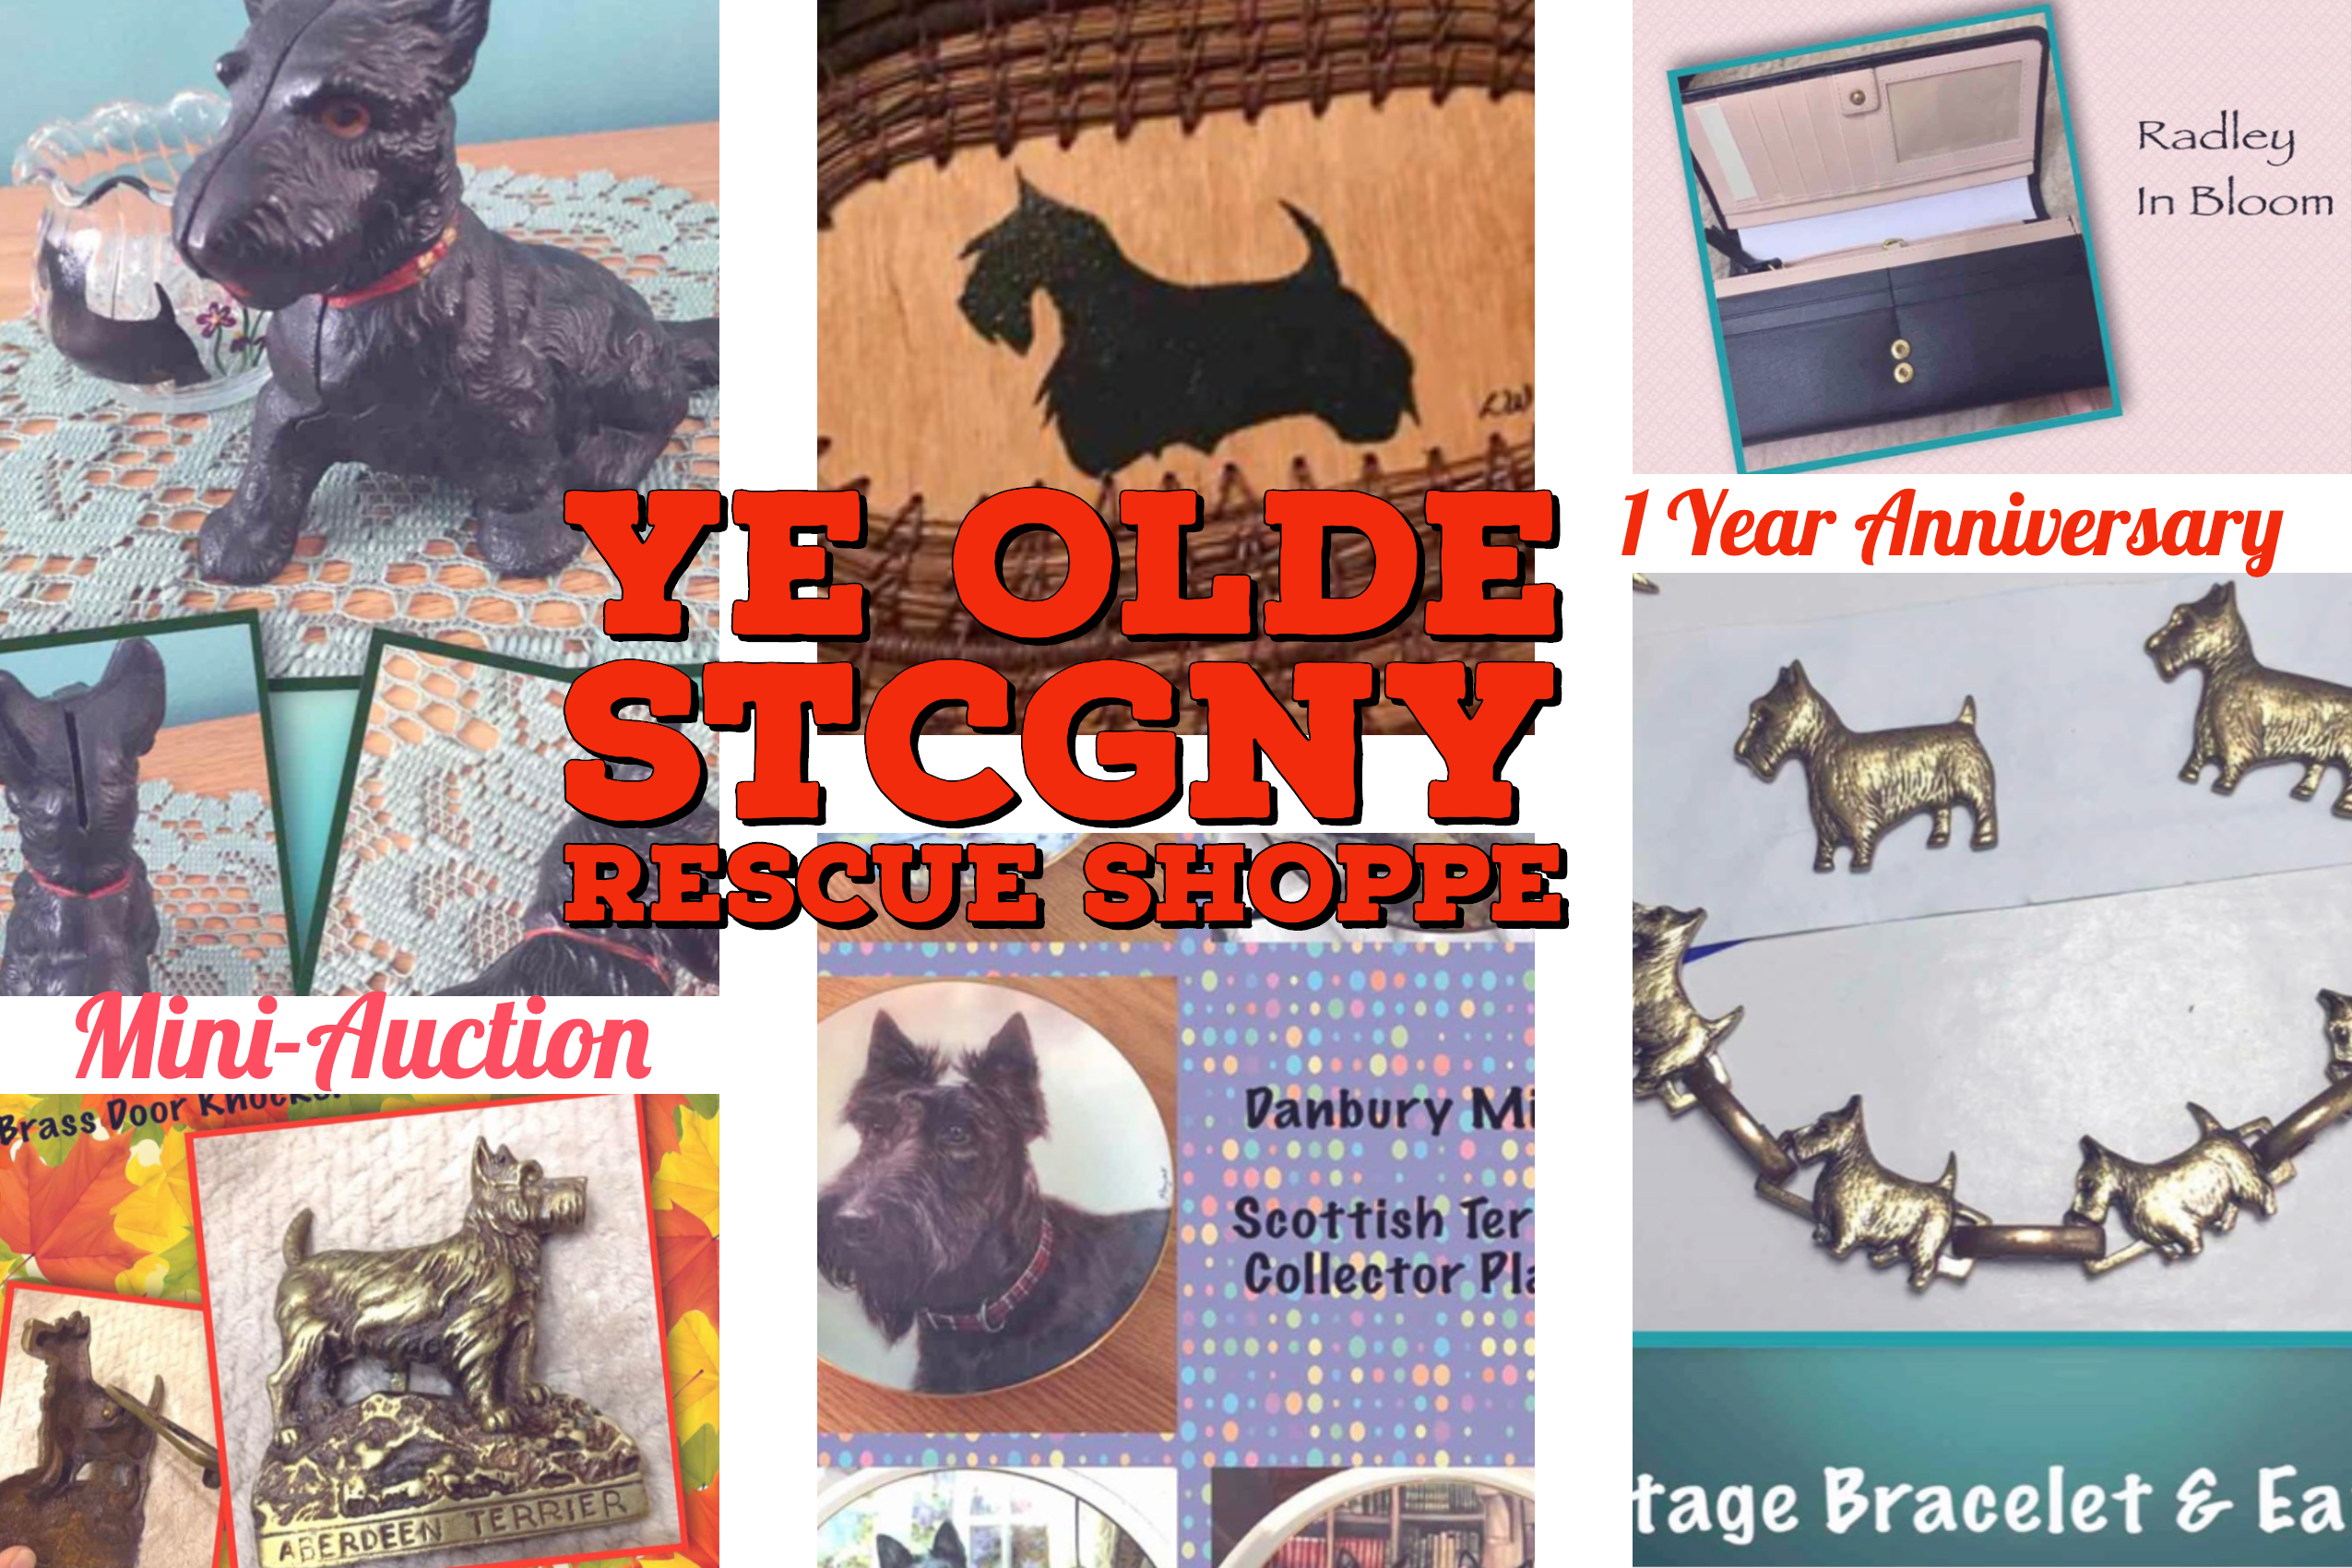 Scottish Terrier Club of Greater NY Rescue has successful fundraising mini auction art Facebook shop